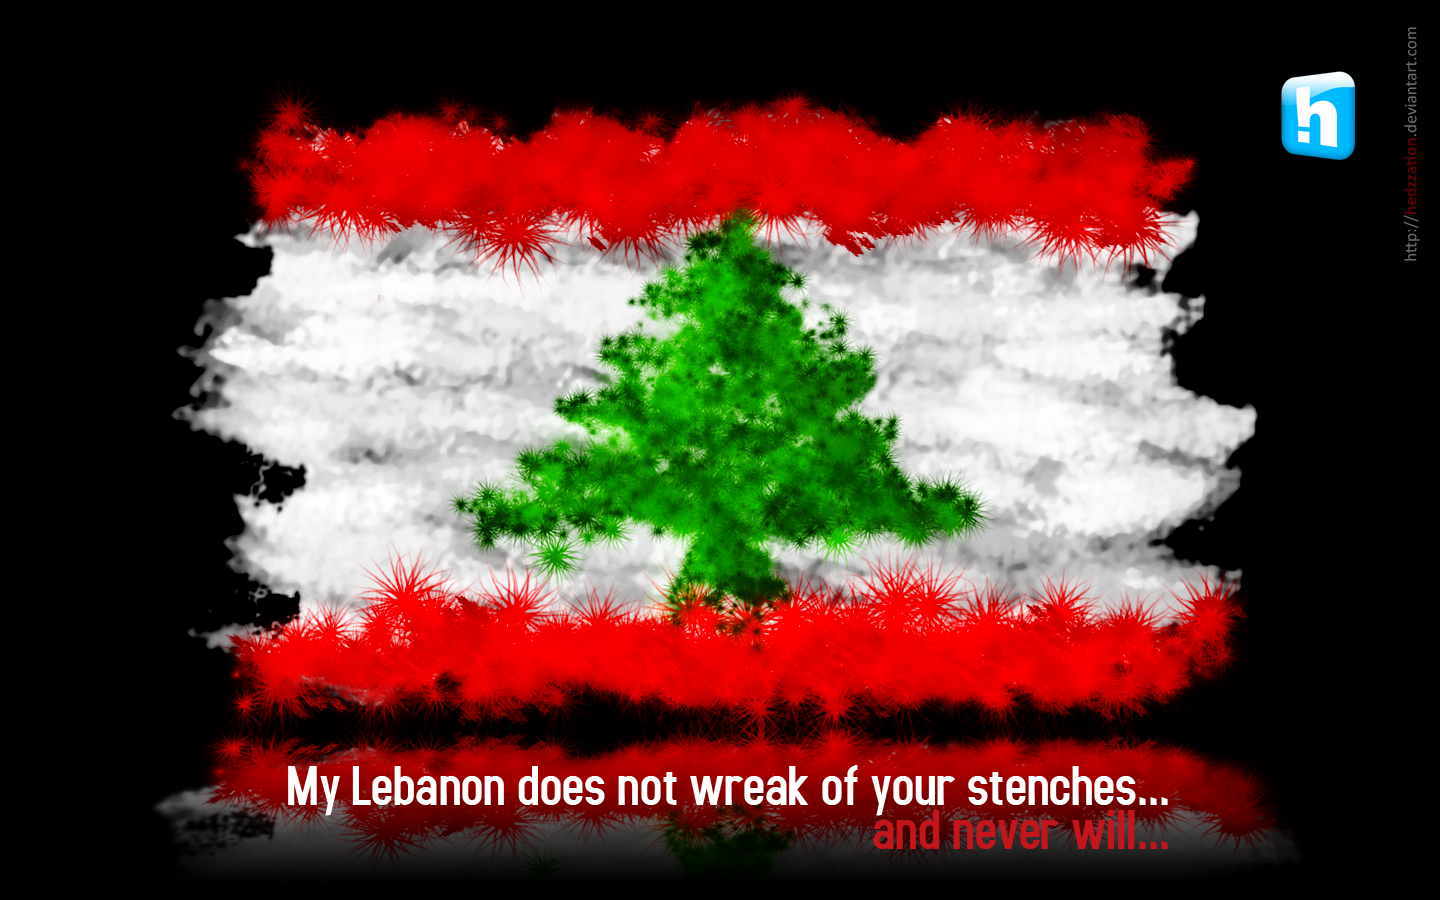 My Lebanon by HeDzZaTiOn on DeviantArt